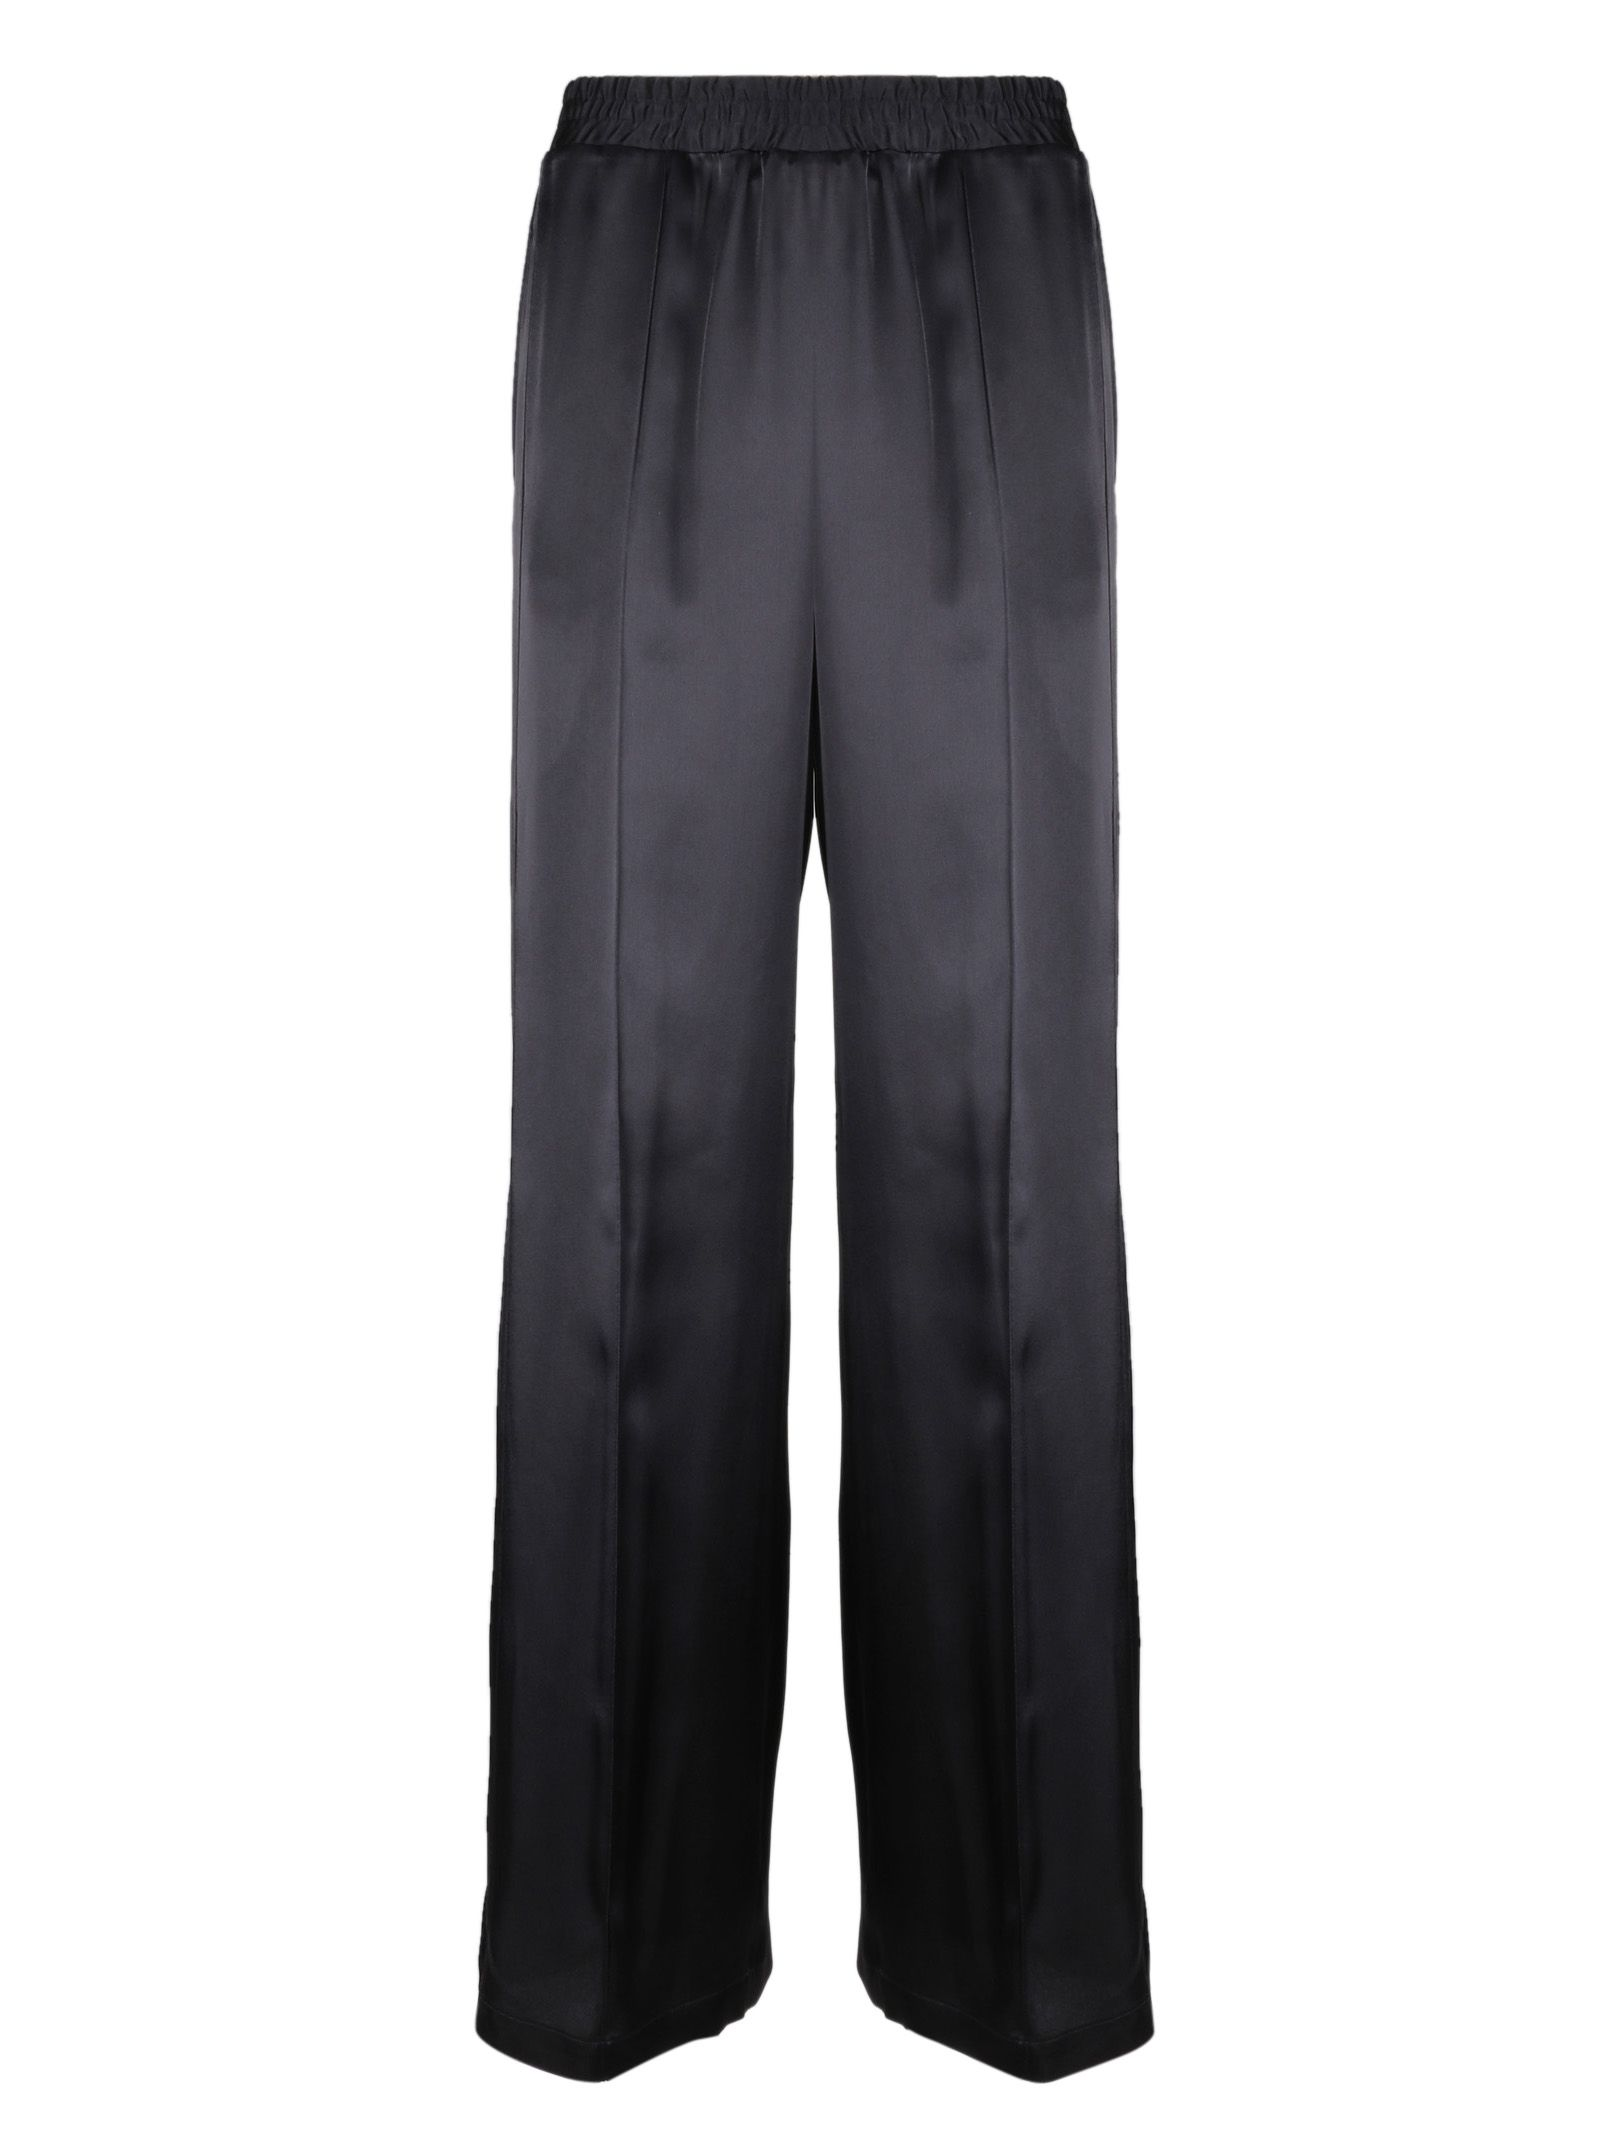 SEMICOUTURE PALAZZO TROUSERS from Italist.com